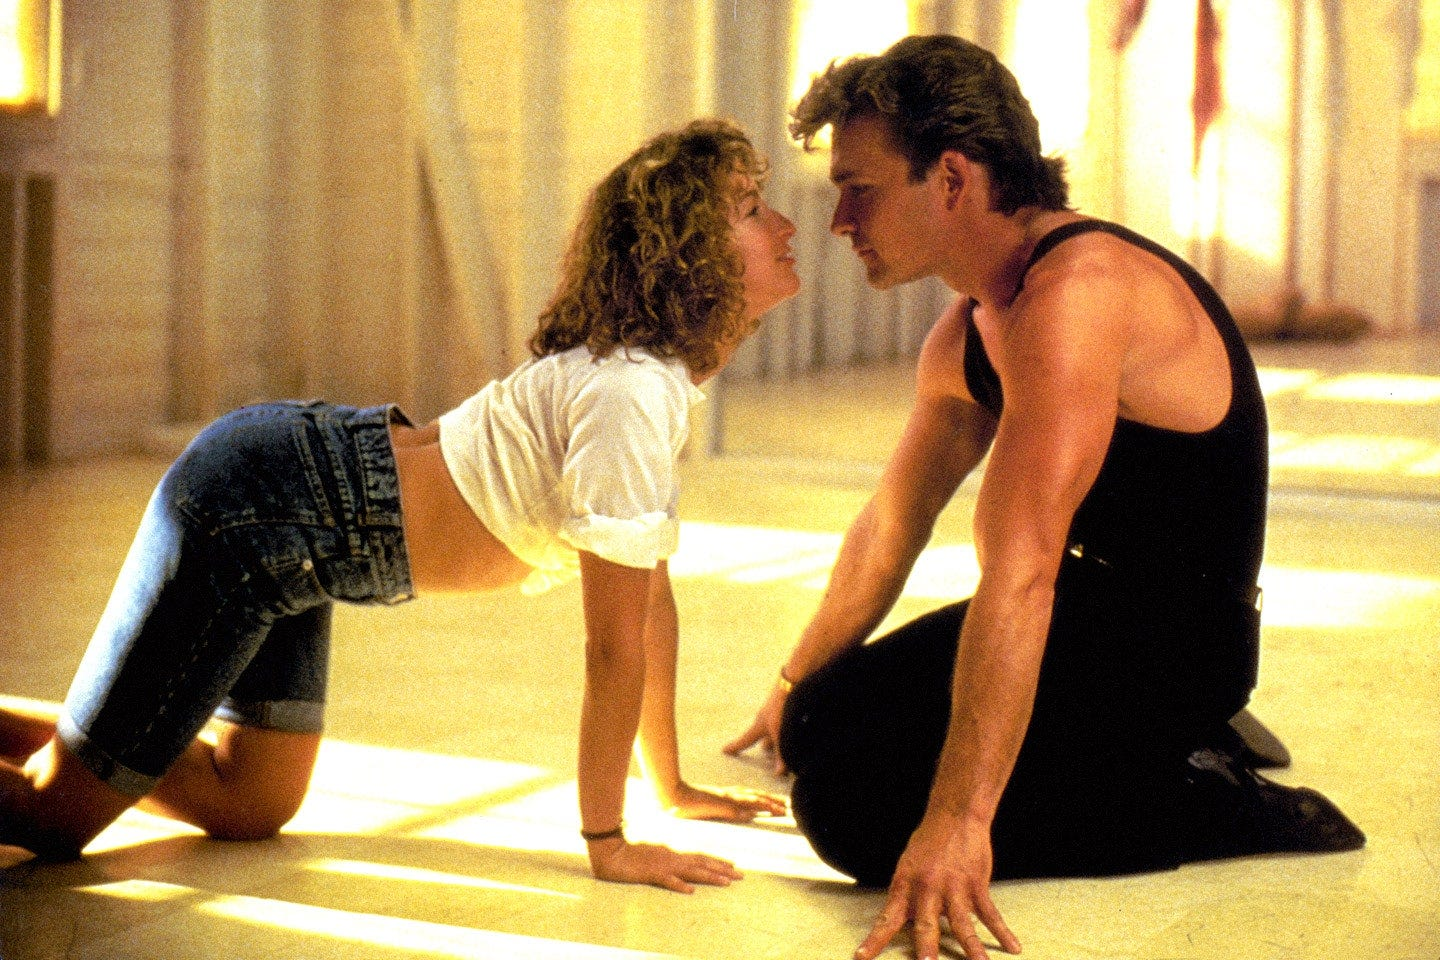 Jennifer Grey Won't Appear in ABC's Dirty Dancing Remake | Vanity Fair